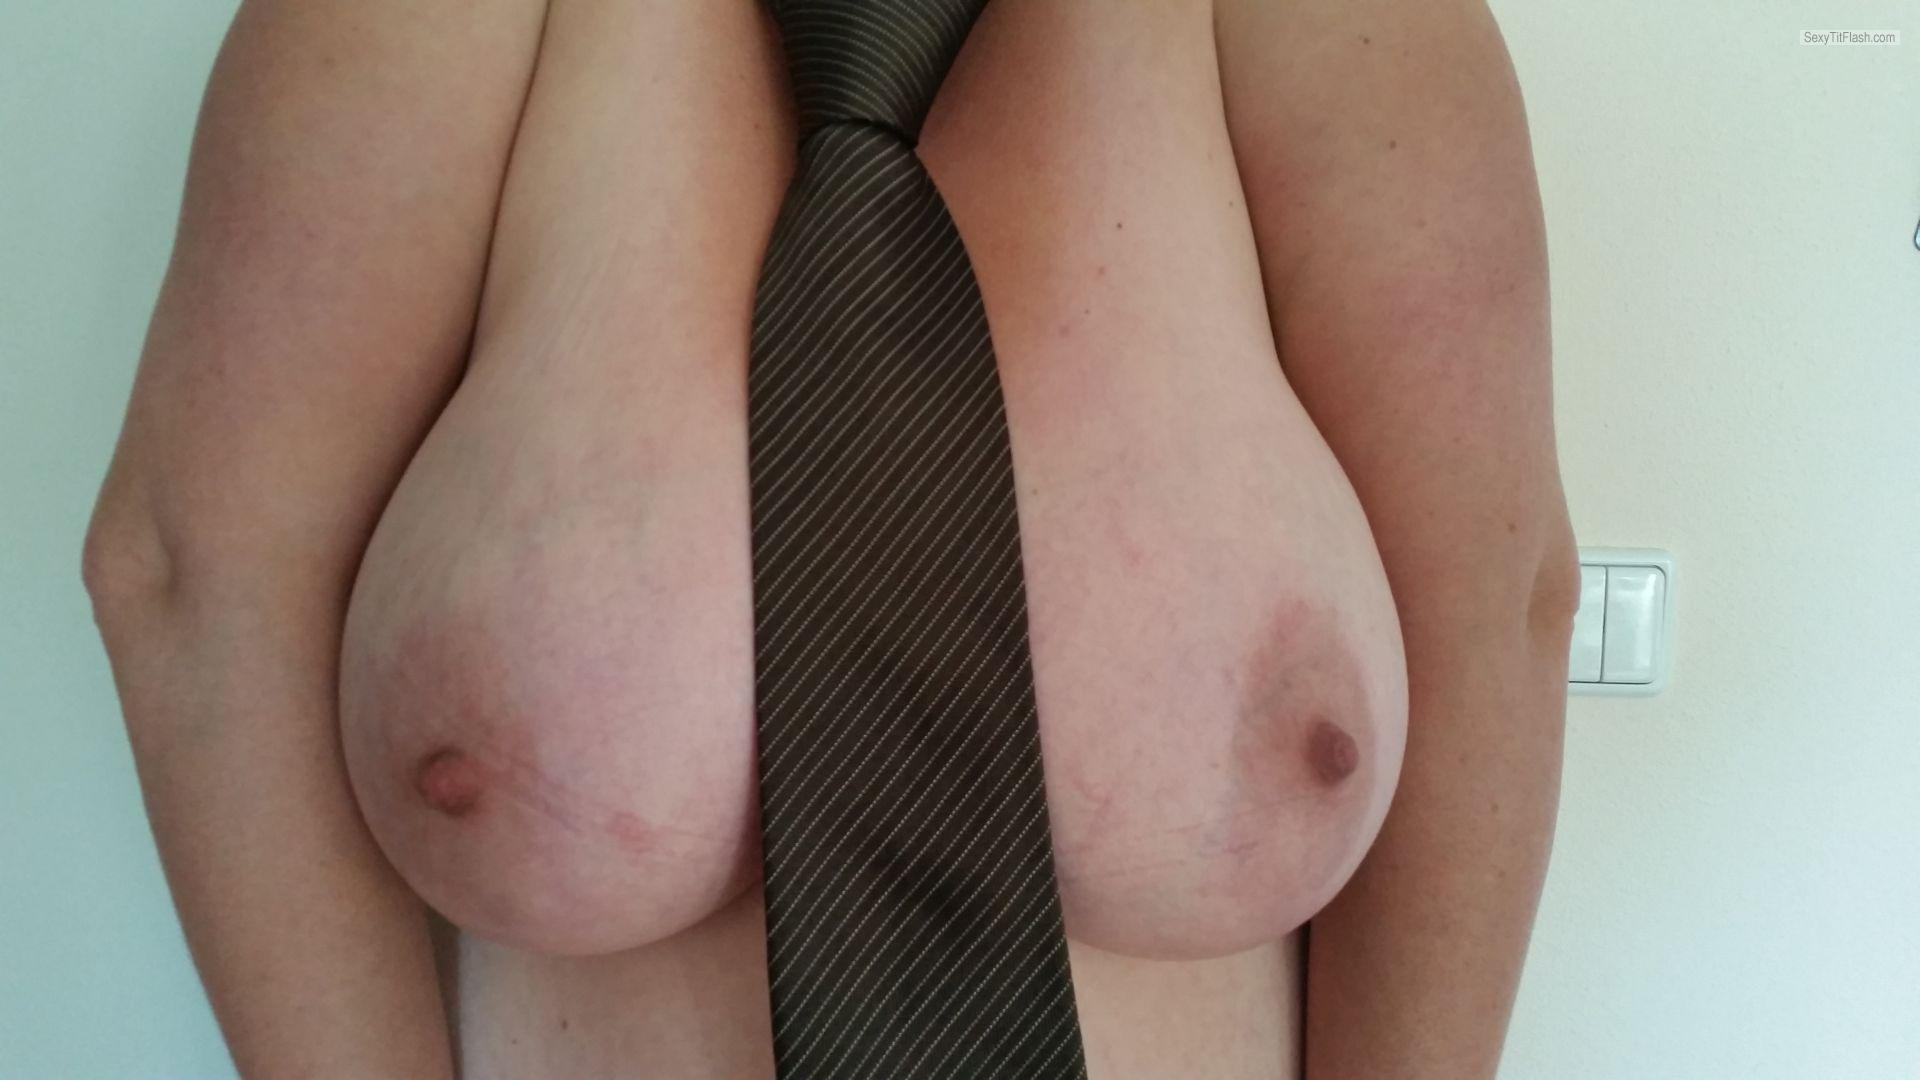 Very big Tits Of My Wife 77hidden